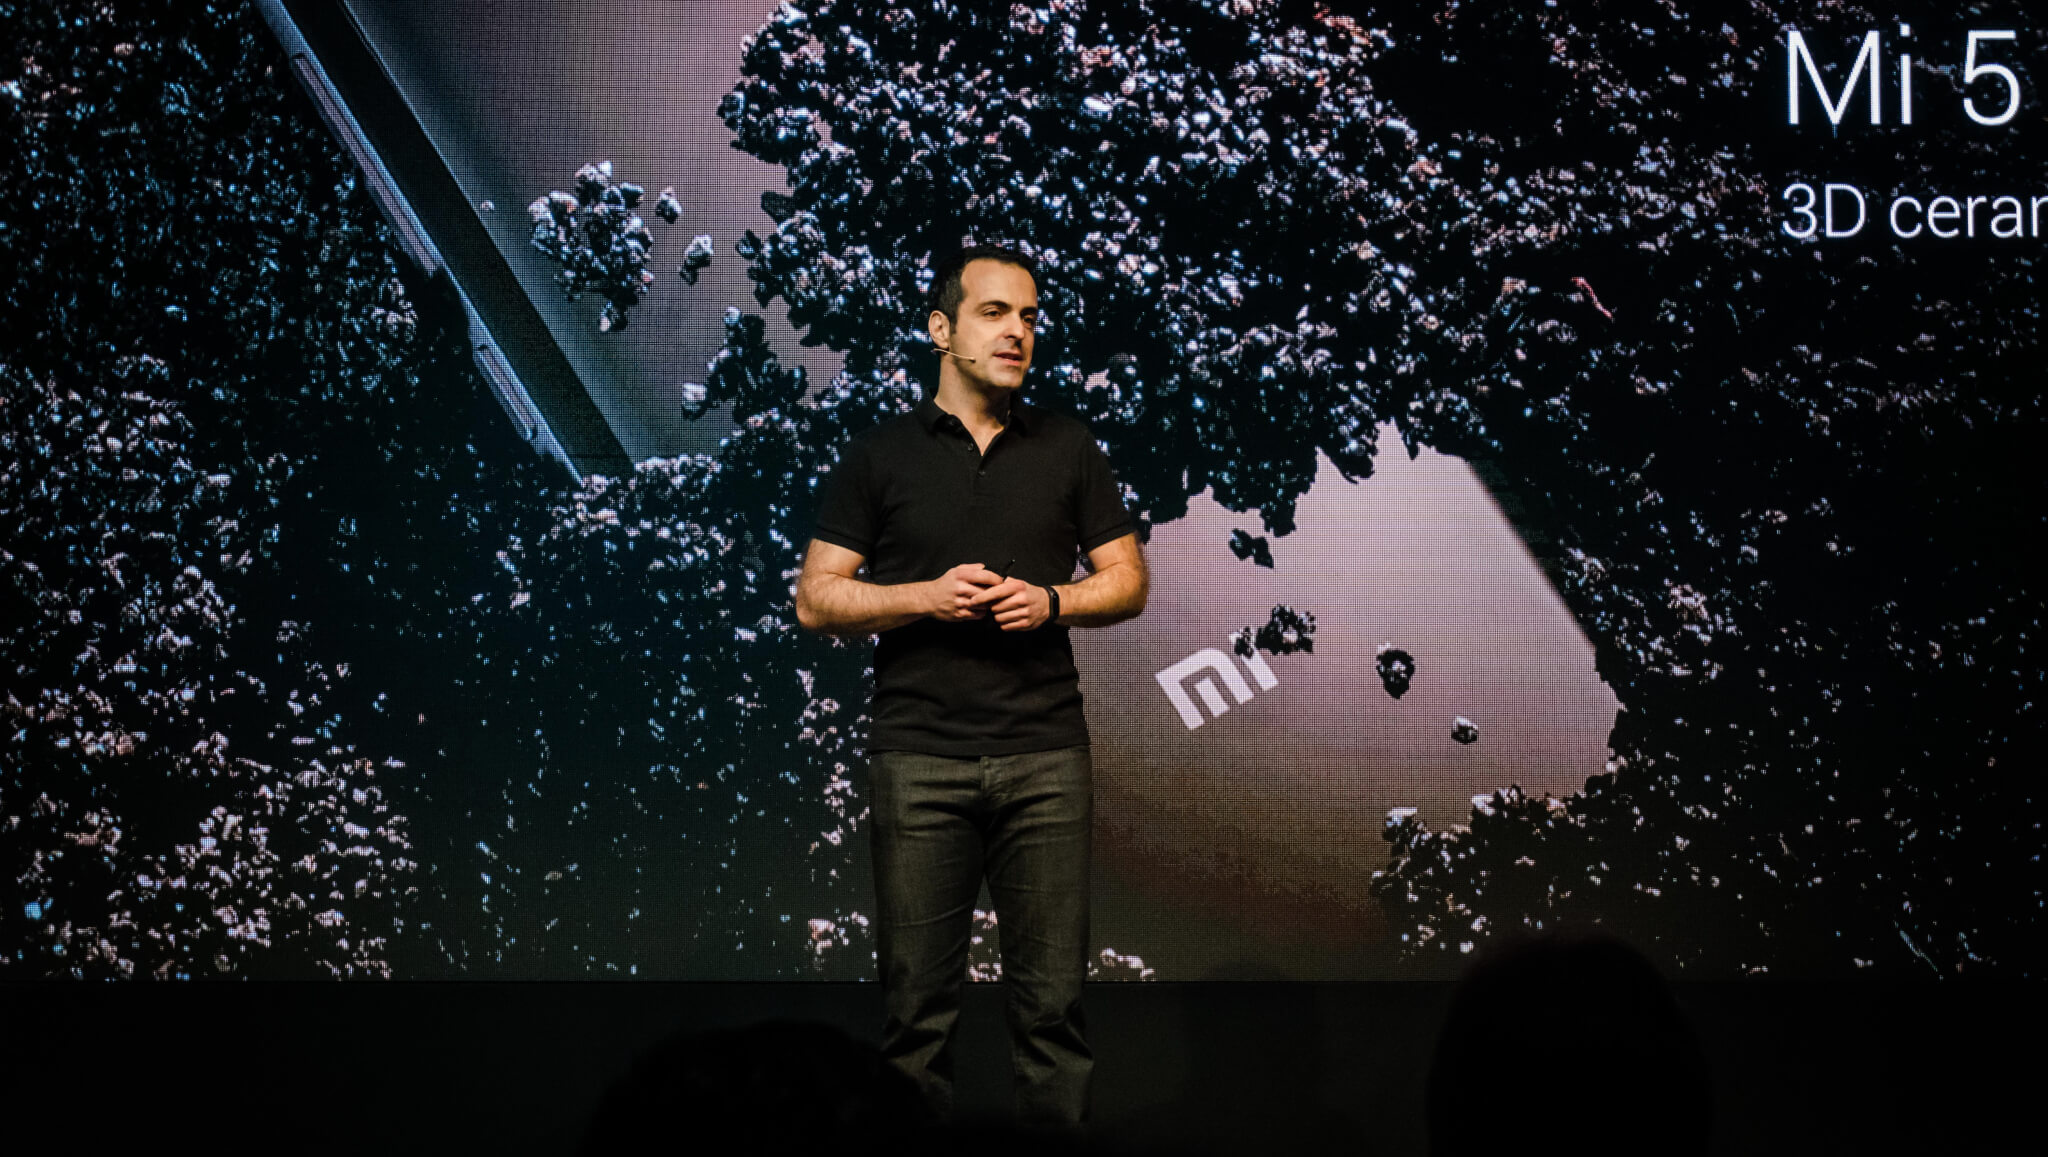 Xiaomi VP Hugo Barra on stage presents at the 2017 Consumer Electronics Show.